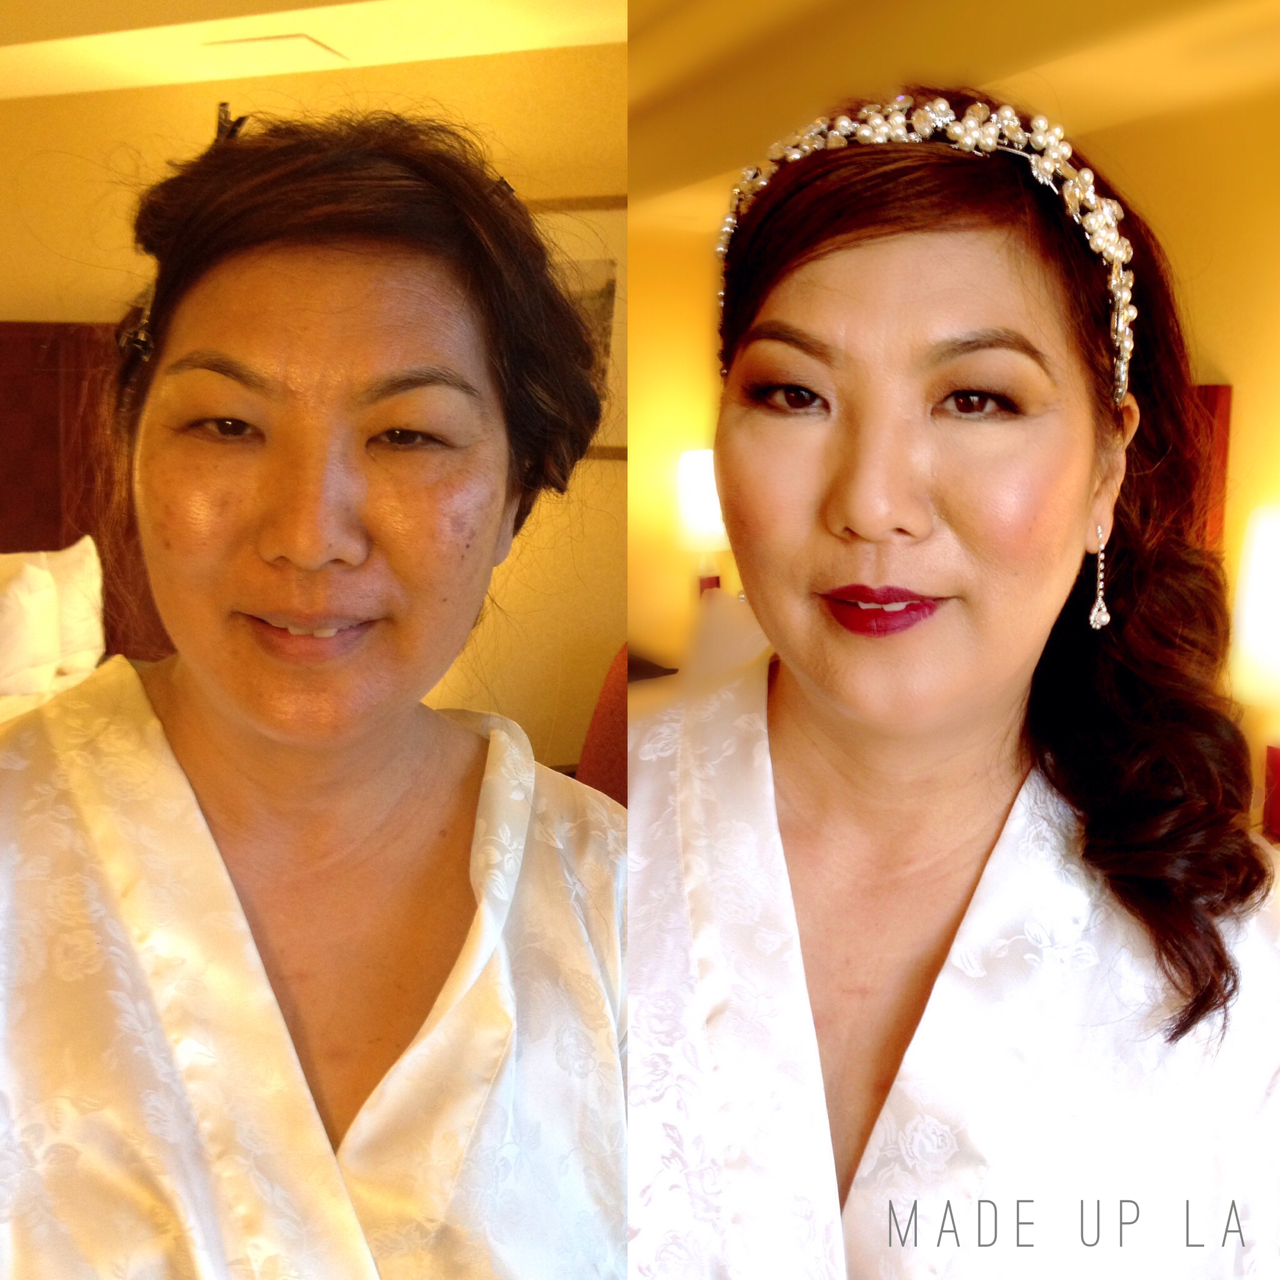 Hair And Makeup Before and After